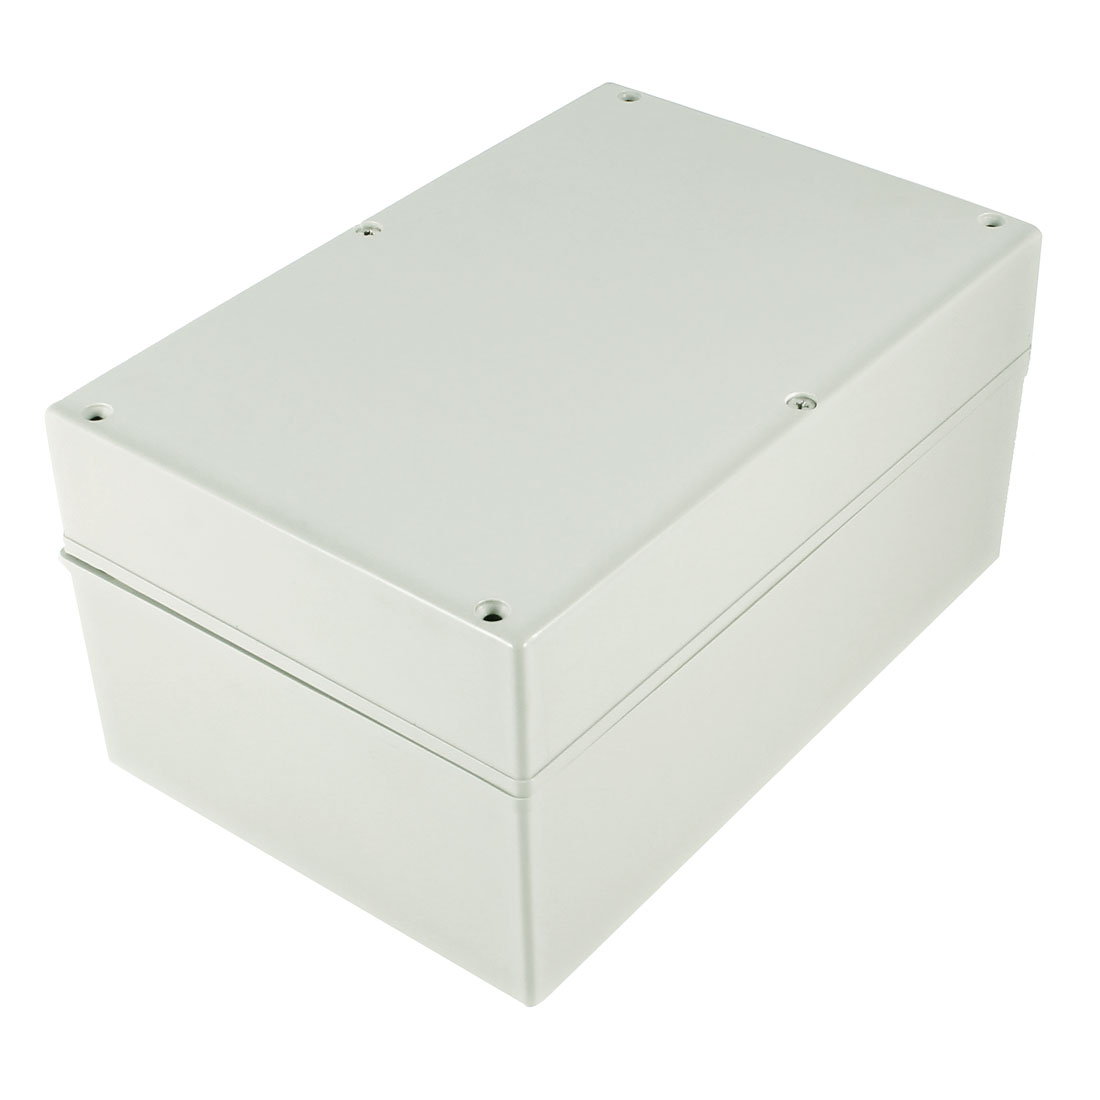 240mmx160mmx120mm-Rectangle-Waterproof-Light-Gray-Plastic-Junction-Box-Case